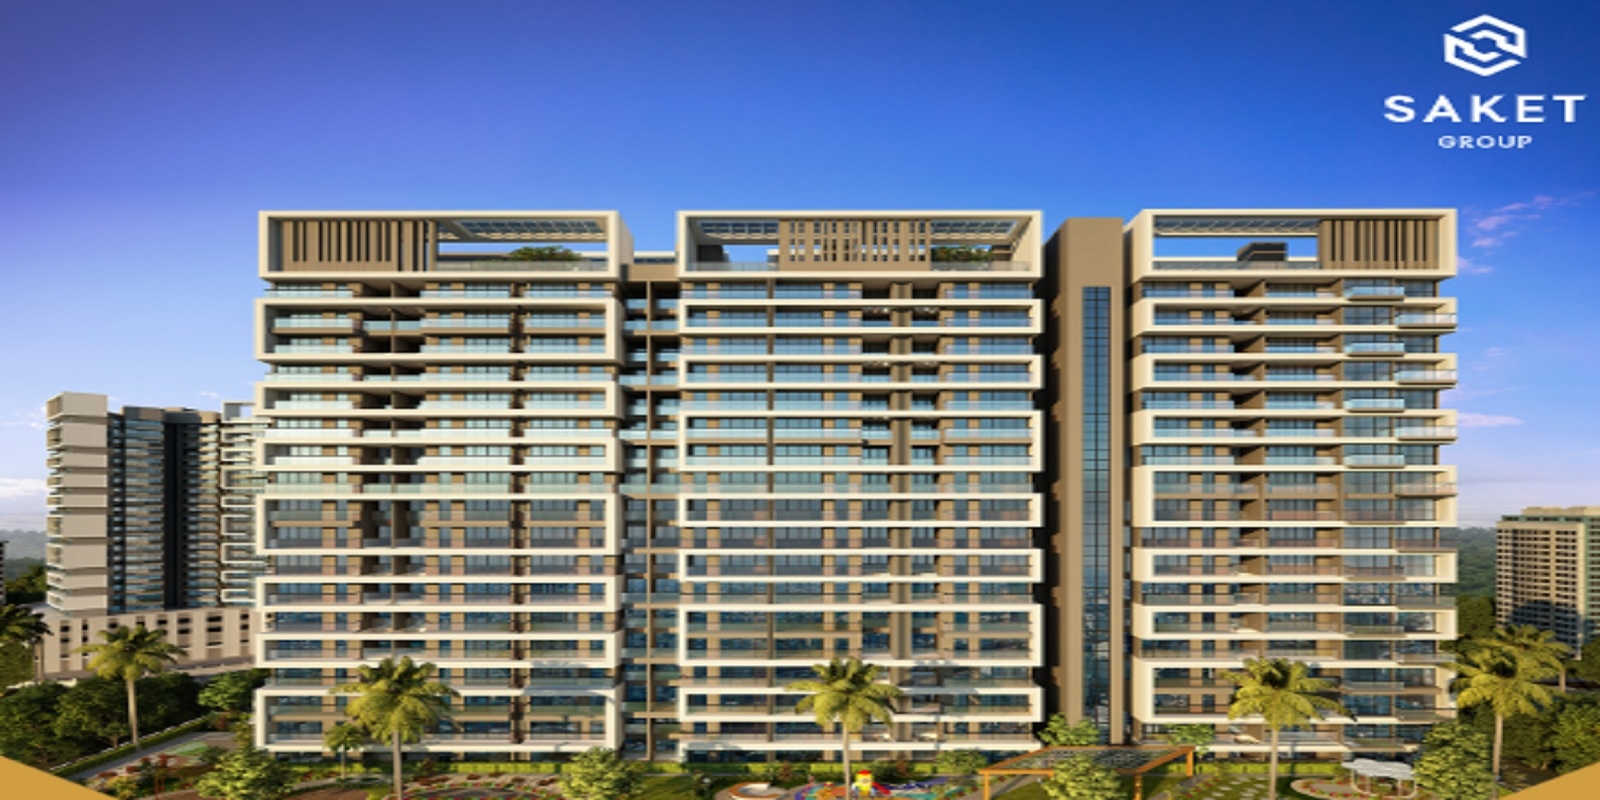 anand saket world project project large image1